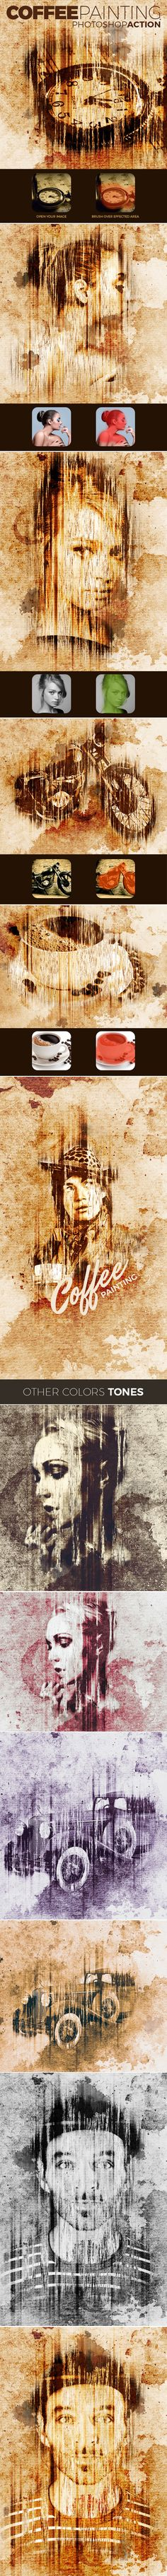 Coffee Painting Photo Effect Photoshop Action. Download here: http://graphicriver.net/item/coffee-painting-action/15171888?ref=ksioks